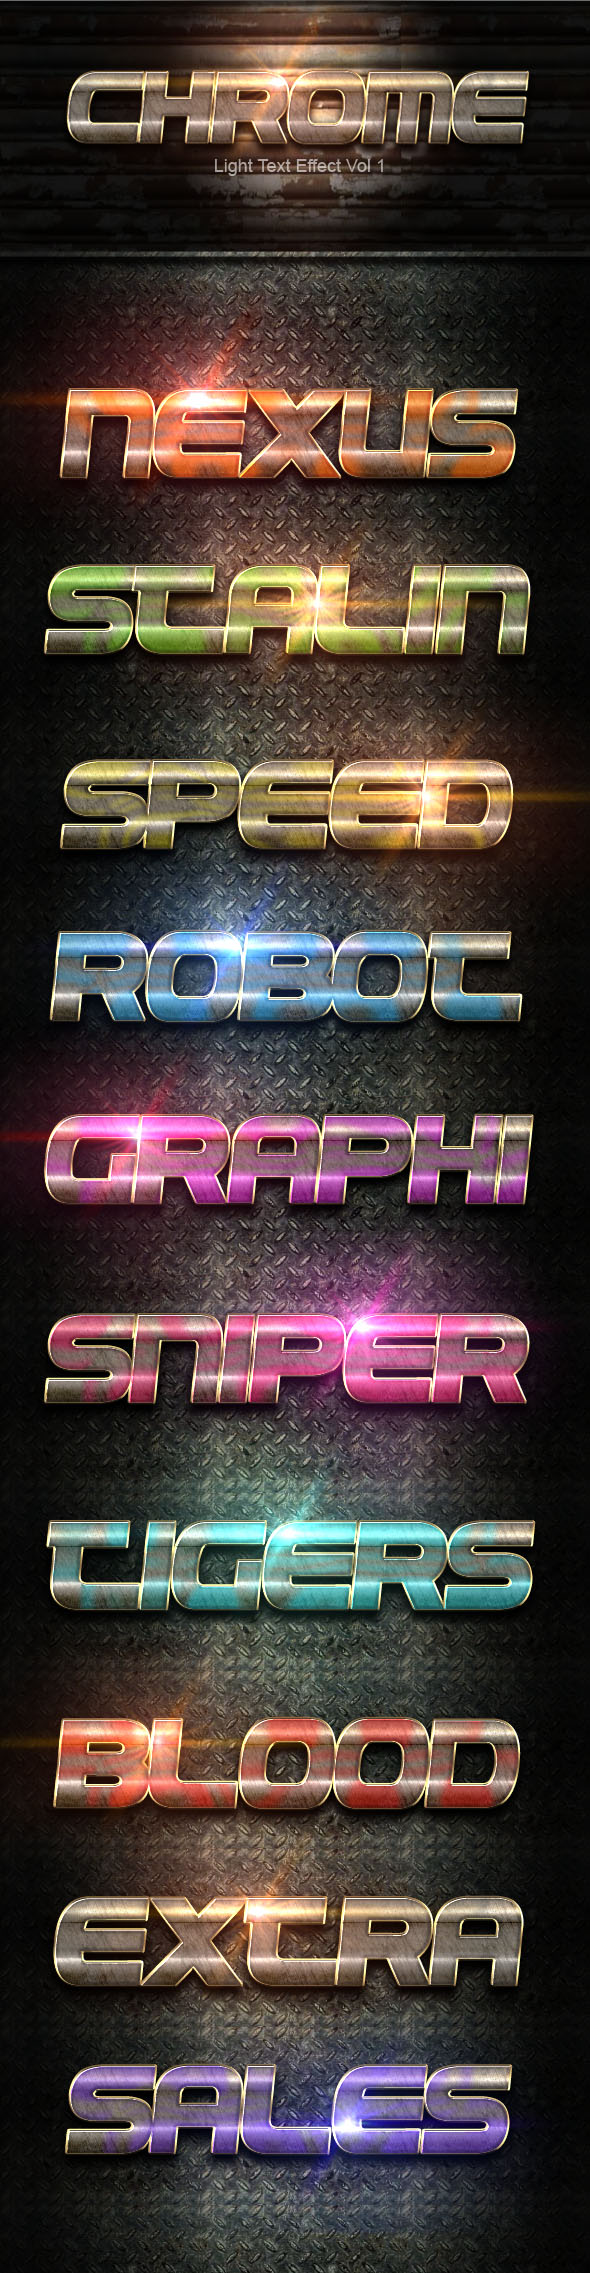 Chrome Light Text Effect 40 - Text Effects Styles